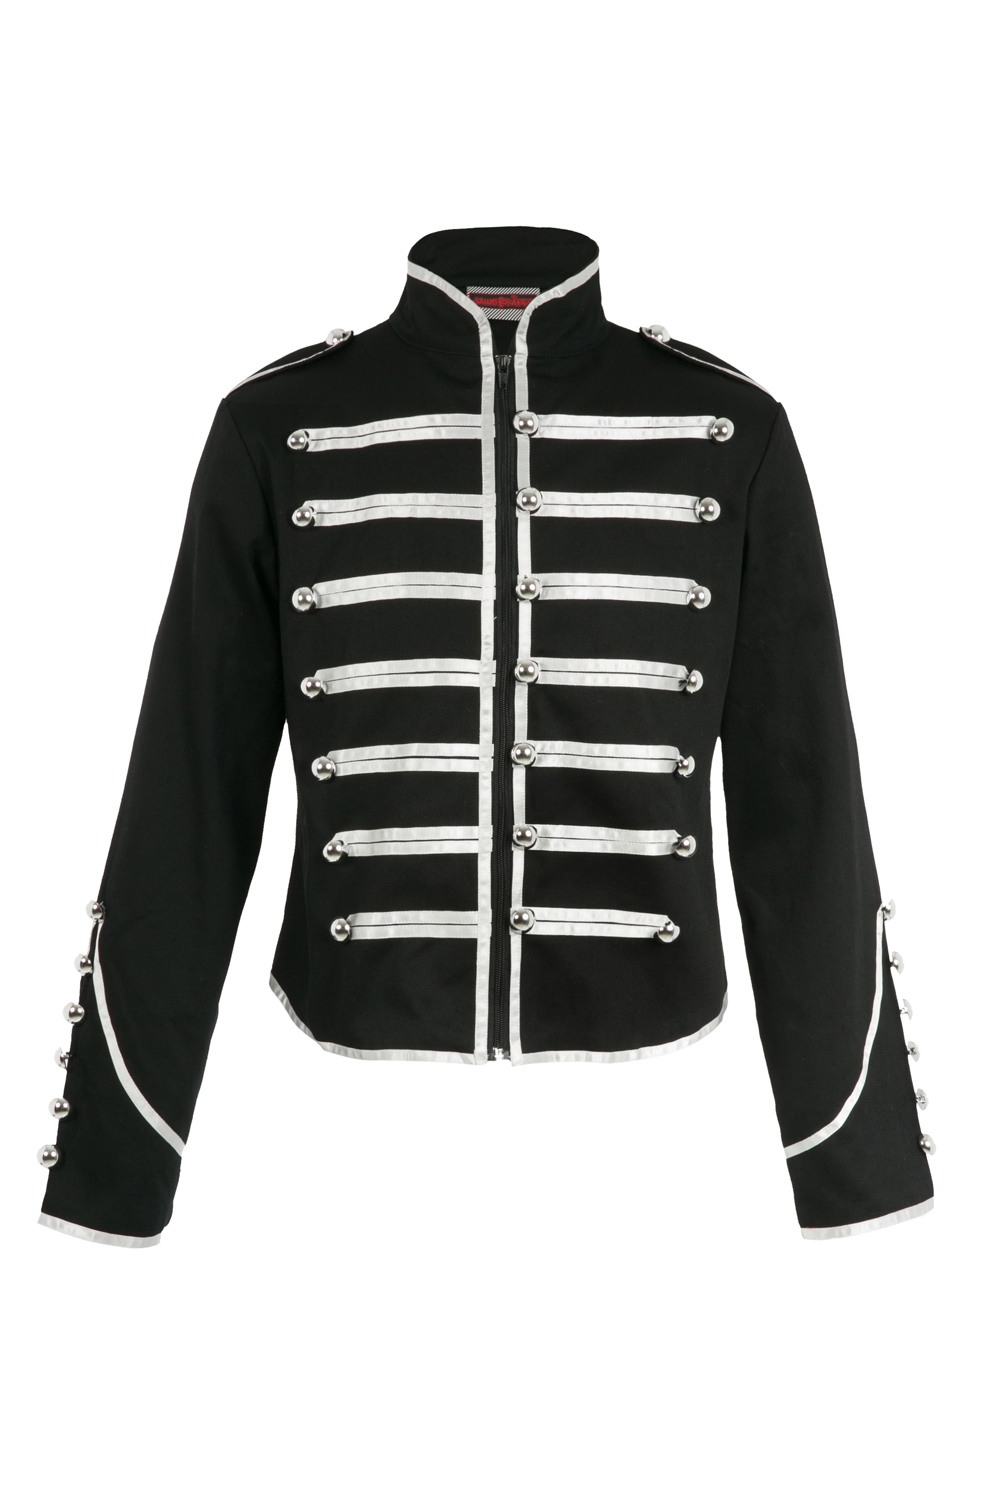 Admiral Silver Jacket